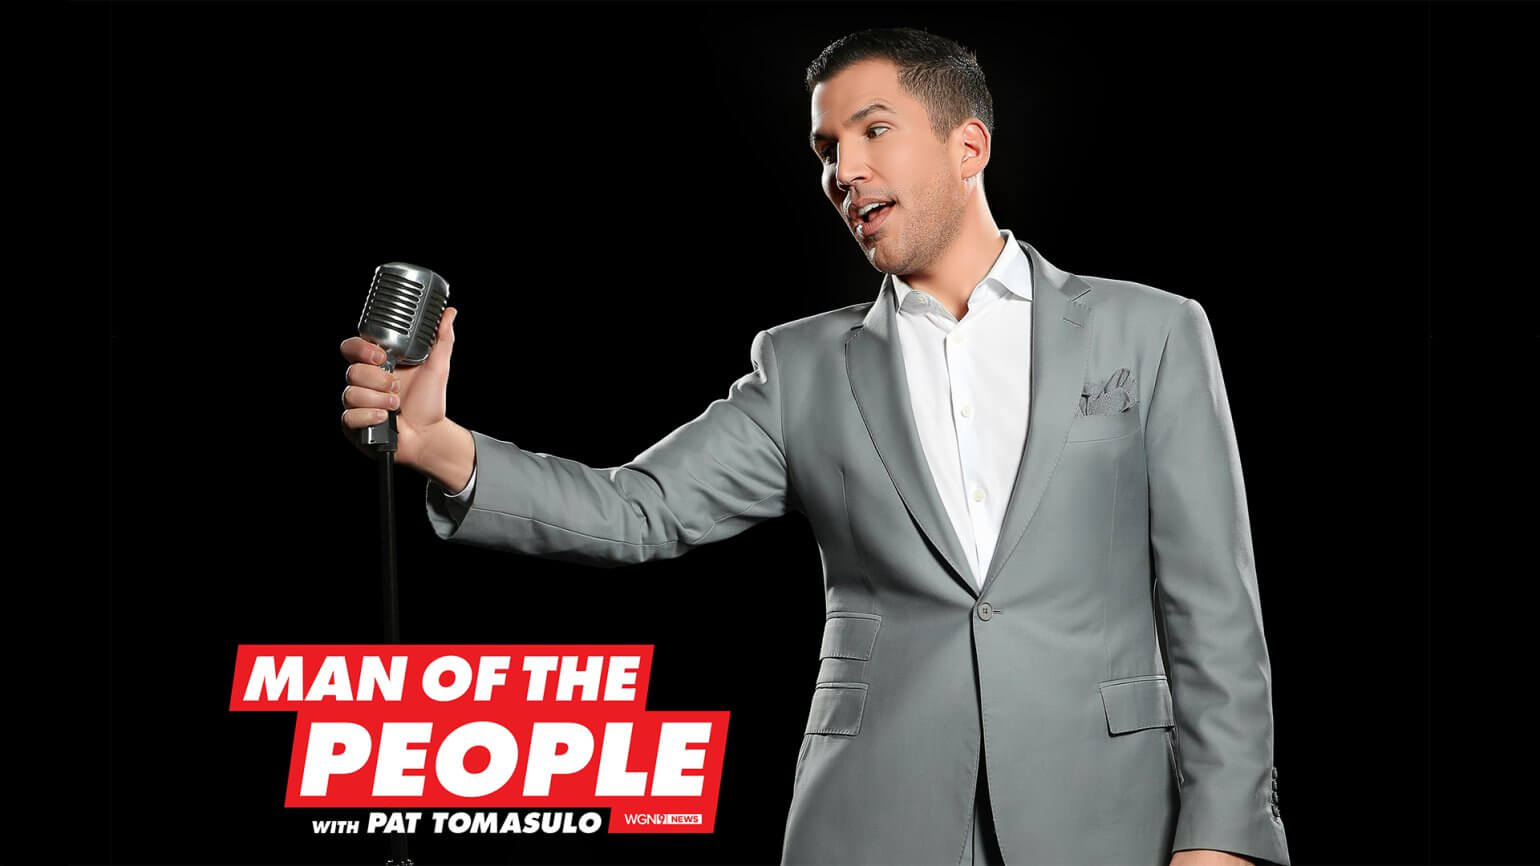 Tomasulo's Man of the People offers refreshing chuckles in mad, mad, mad, mad world